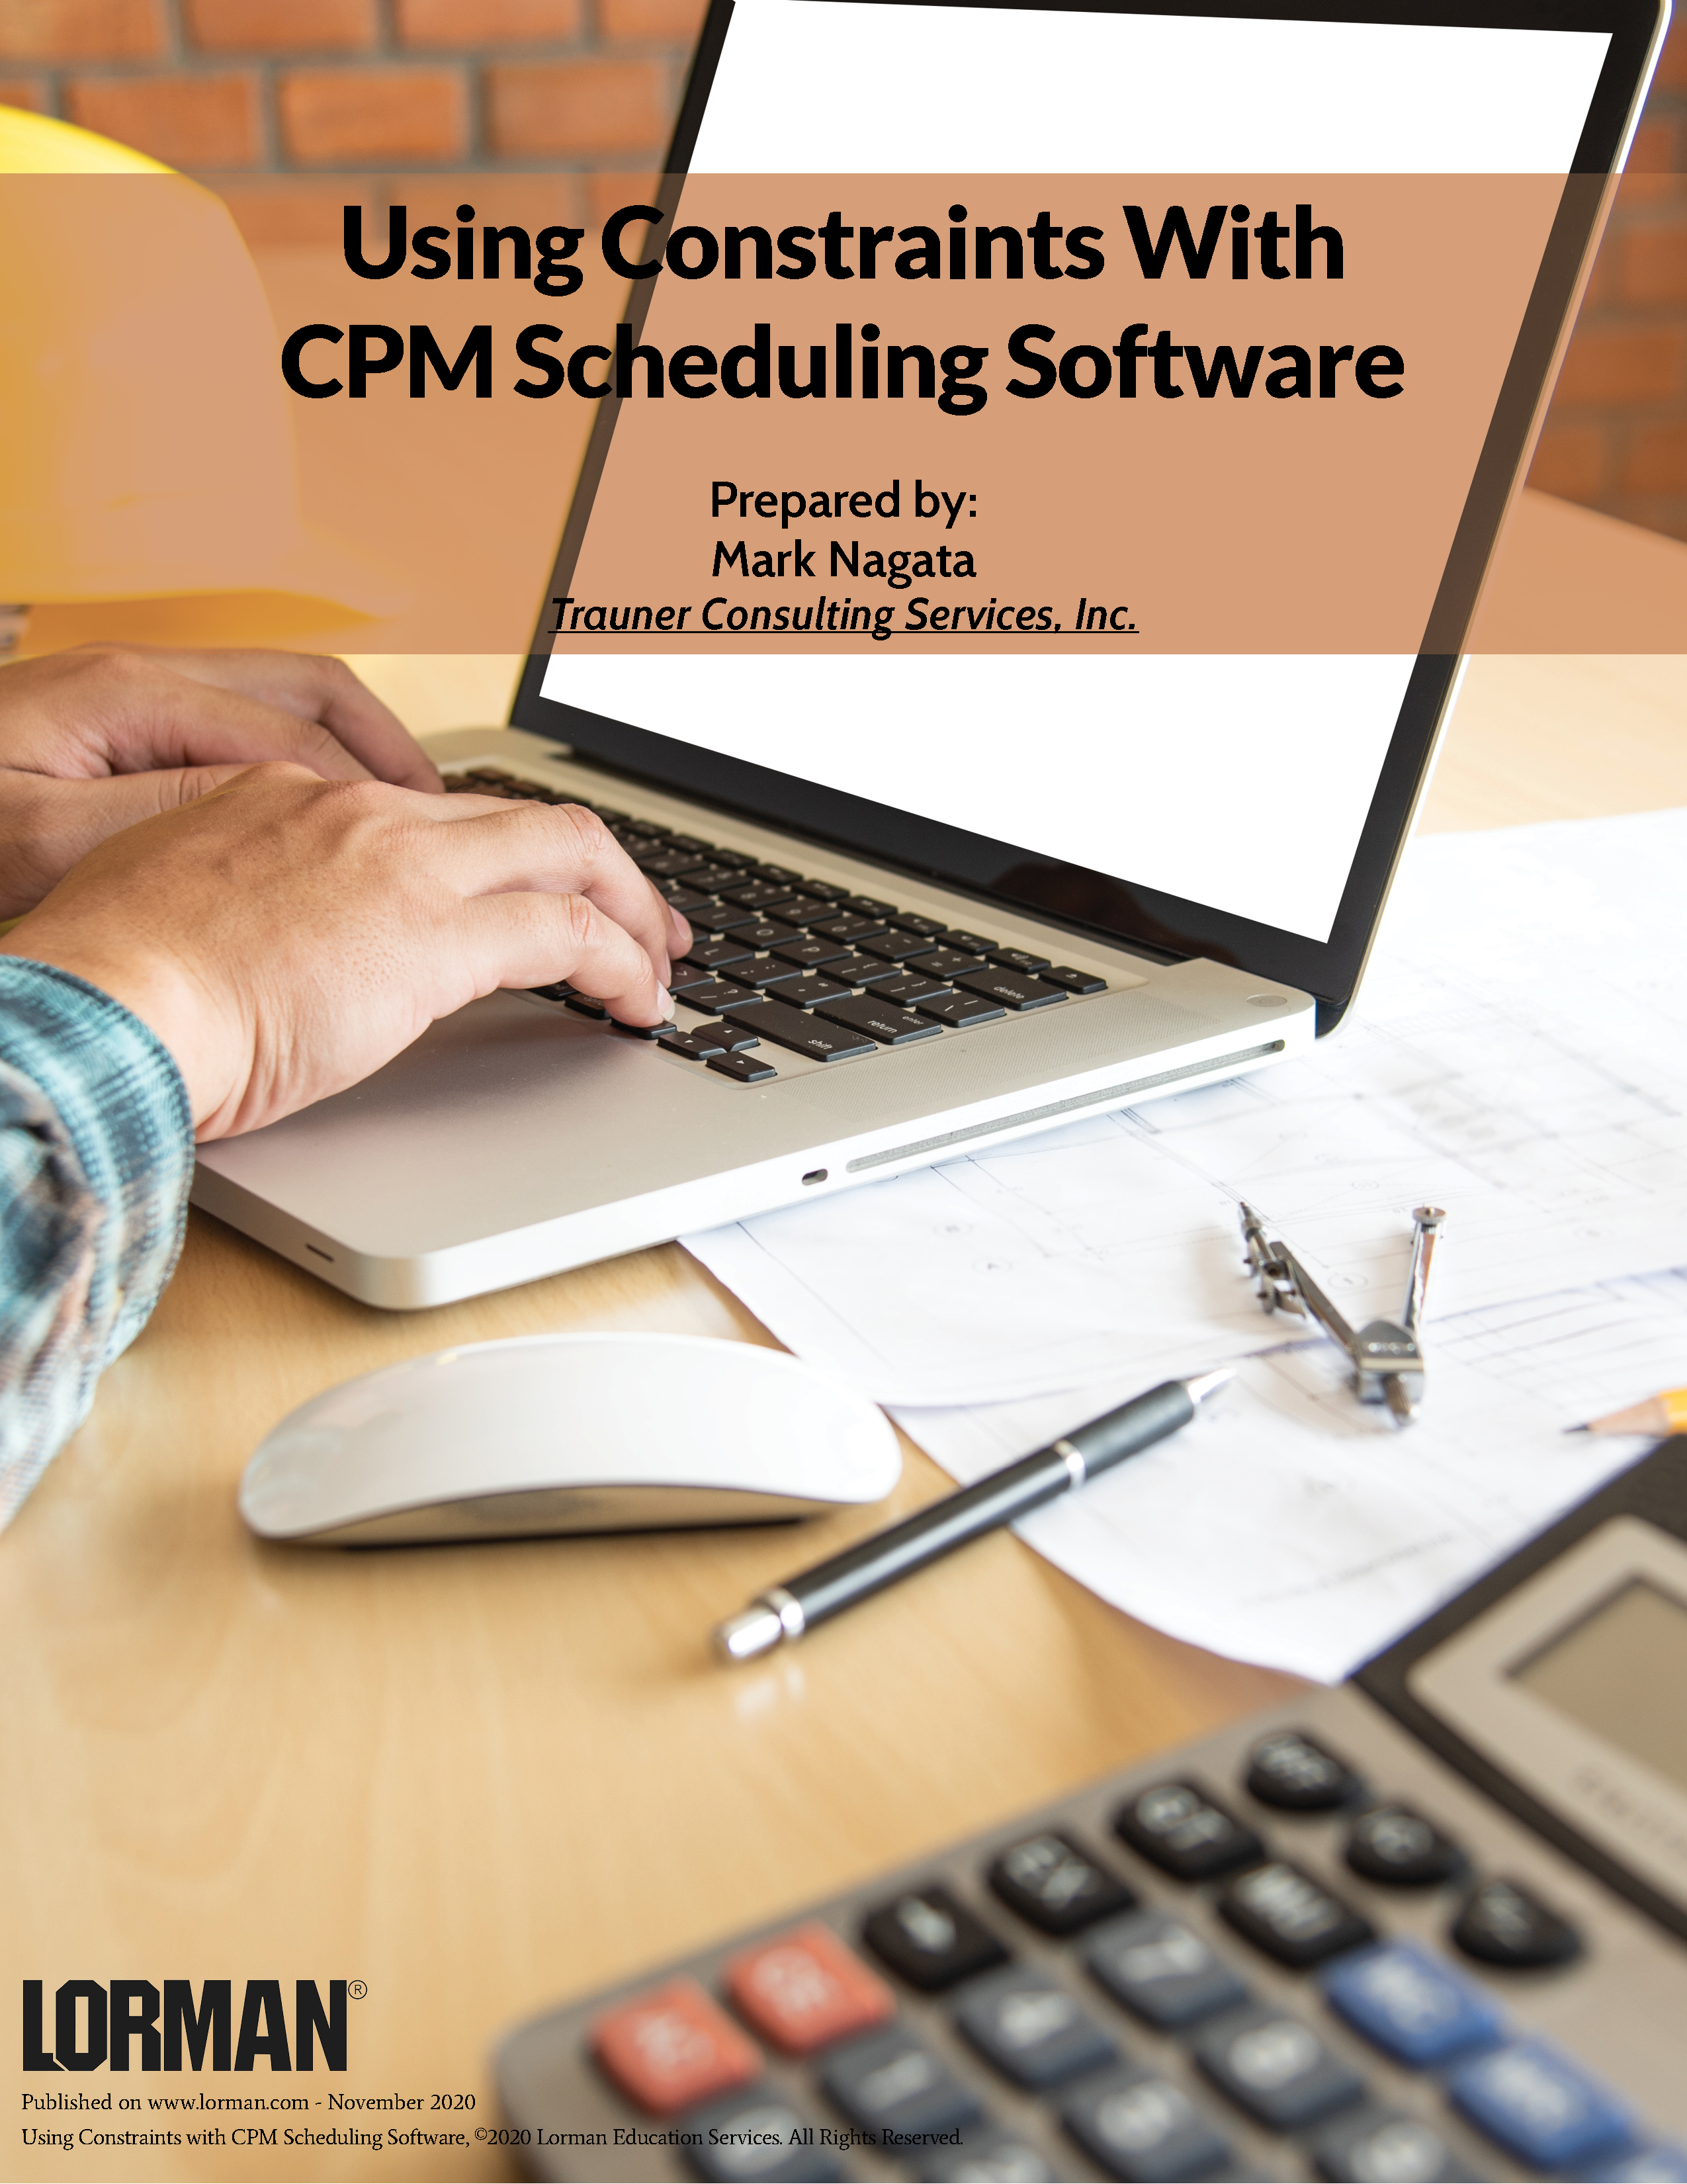 Using Constraints with CPM Scheduling Software